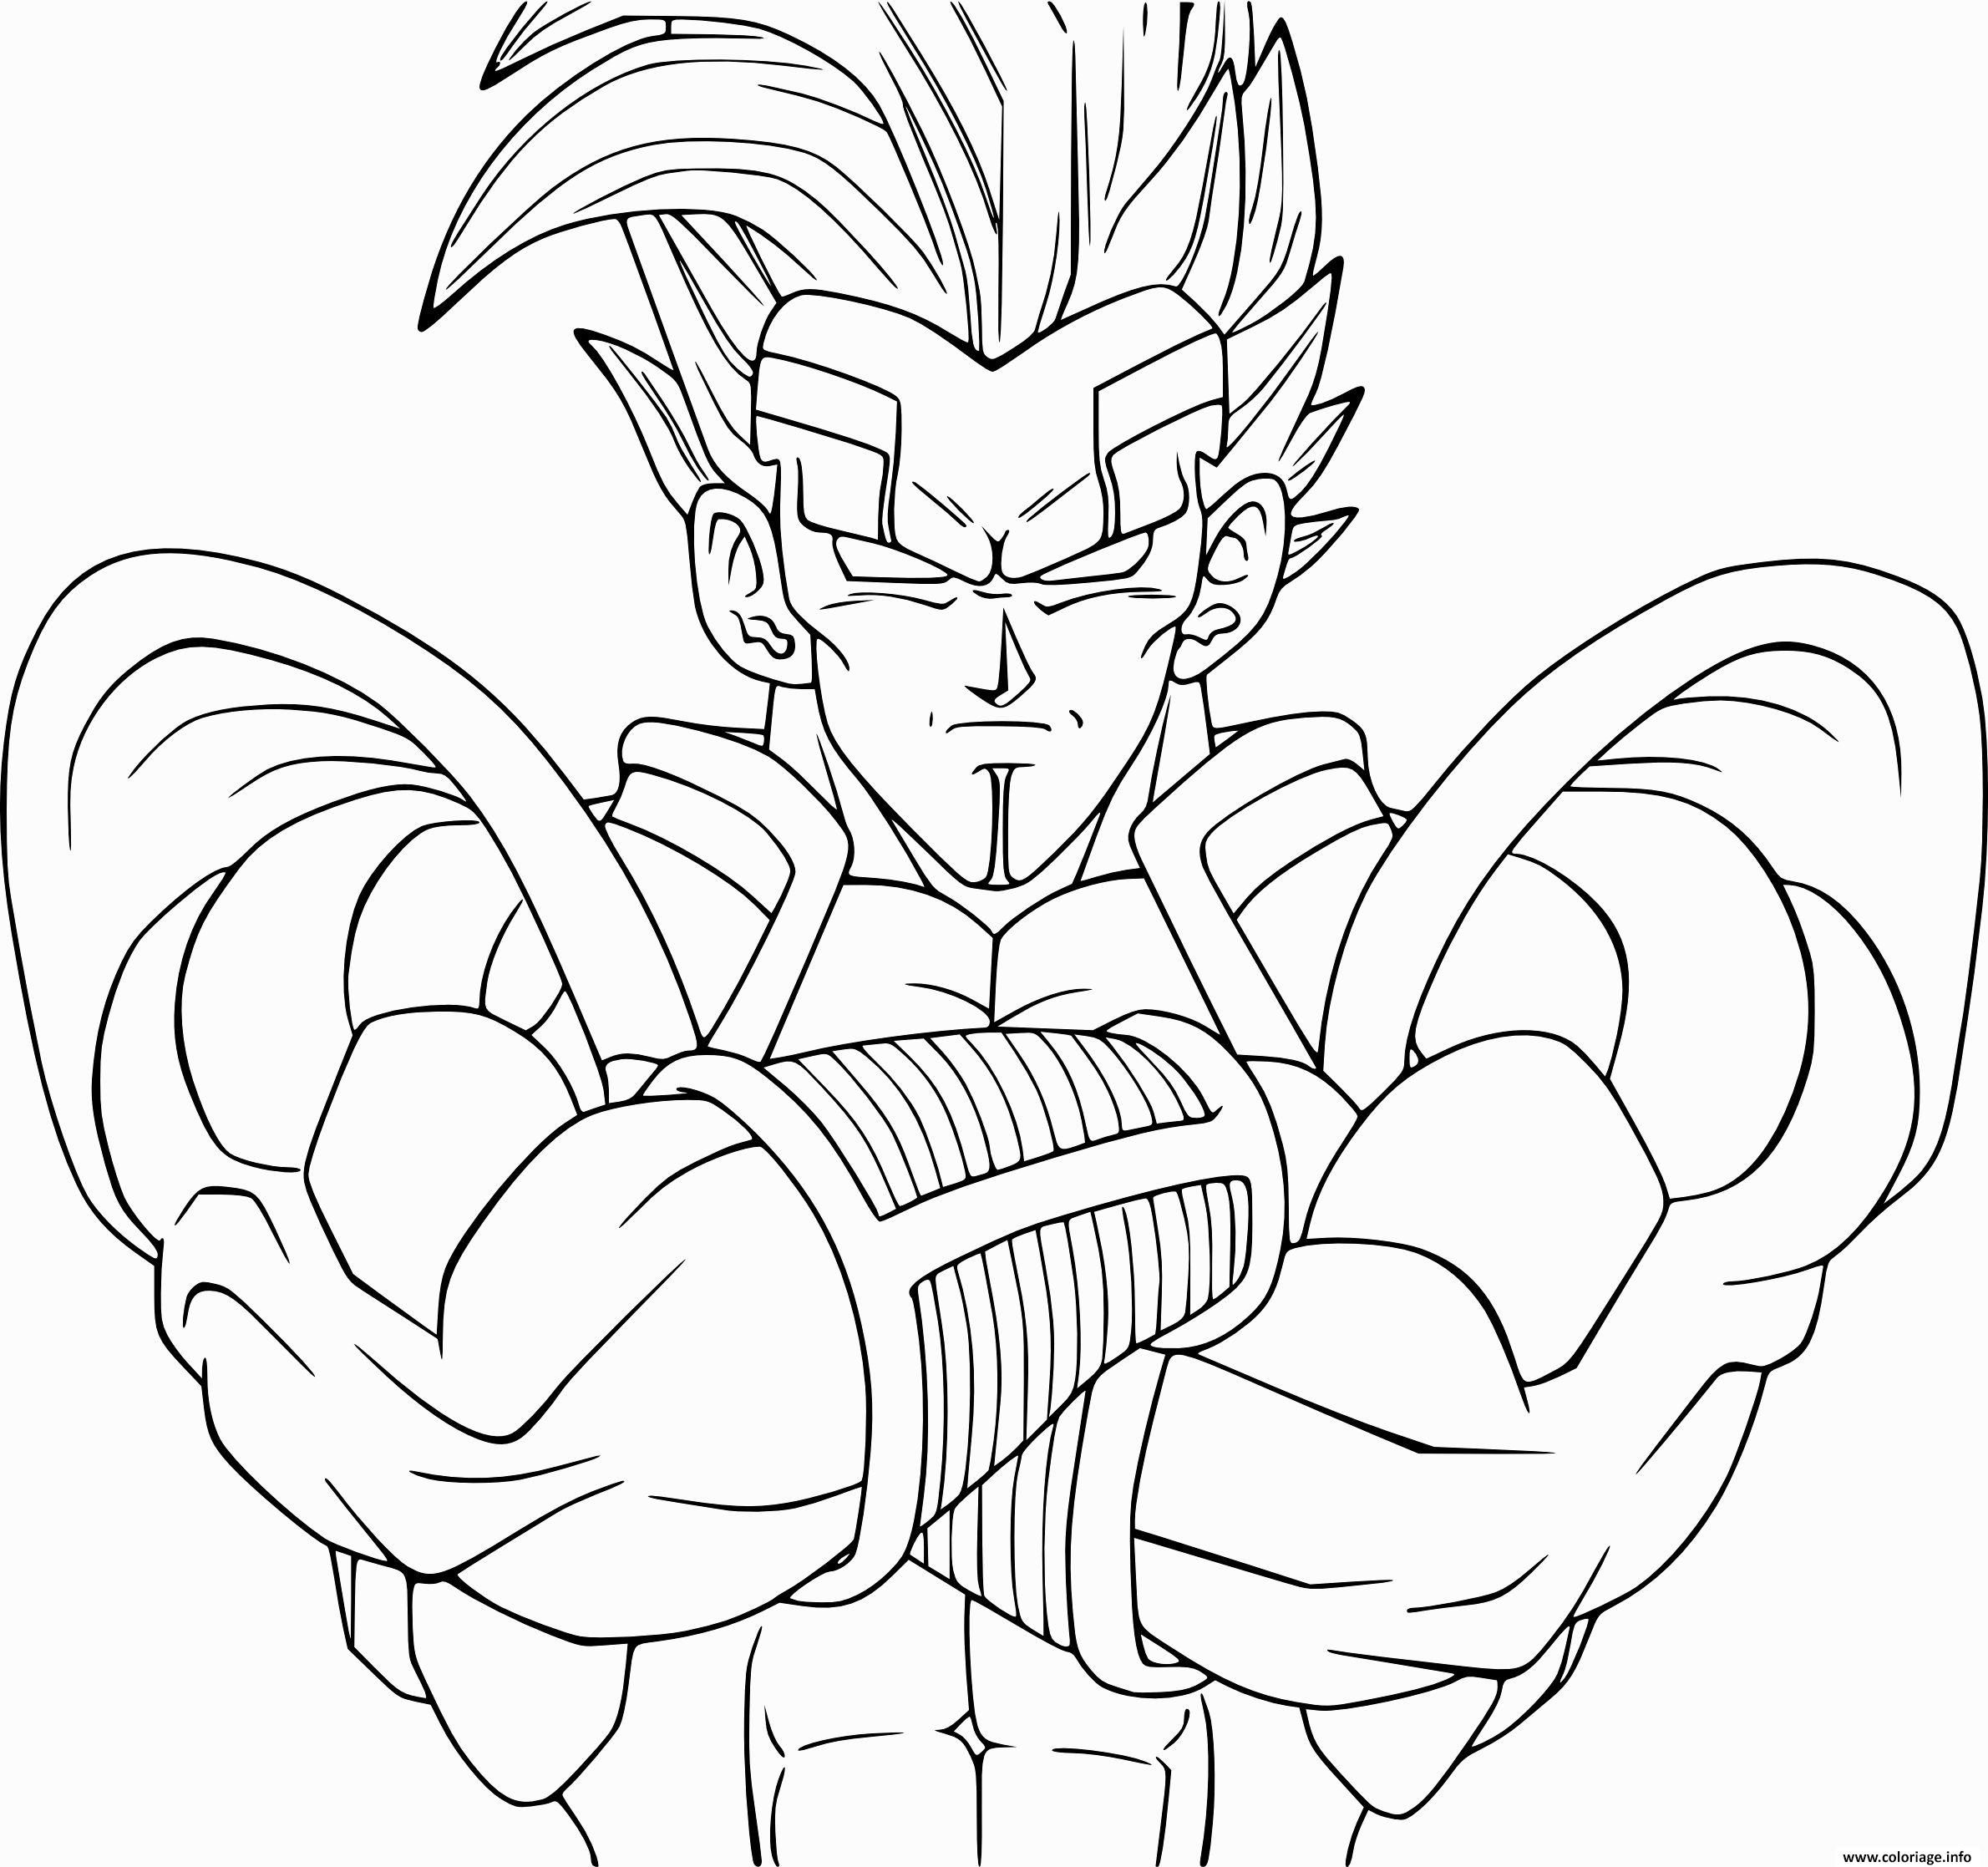 Dessin unique dragon ball z vegeta Coloriage Gratuit à Imprimer